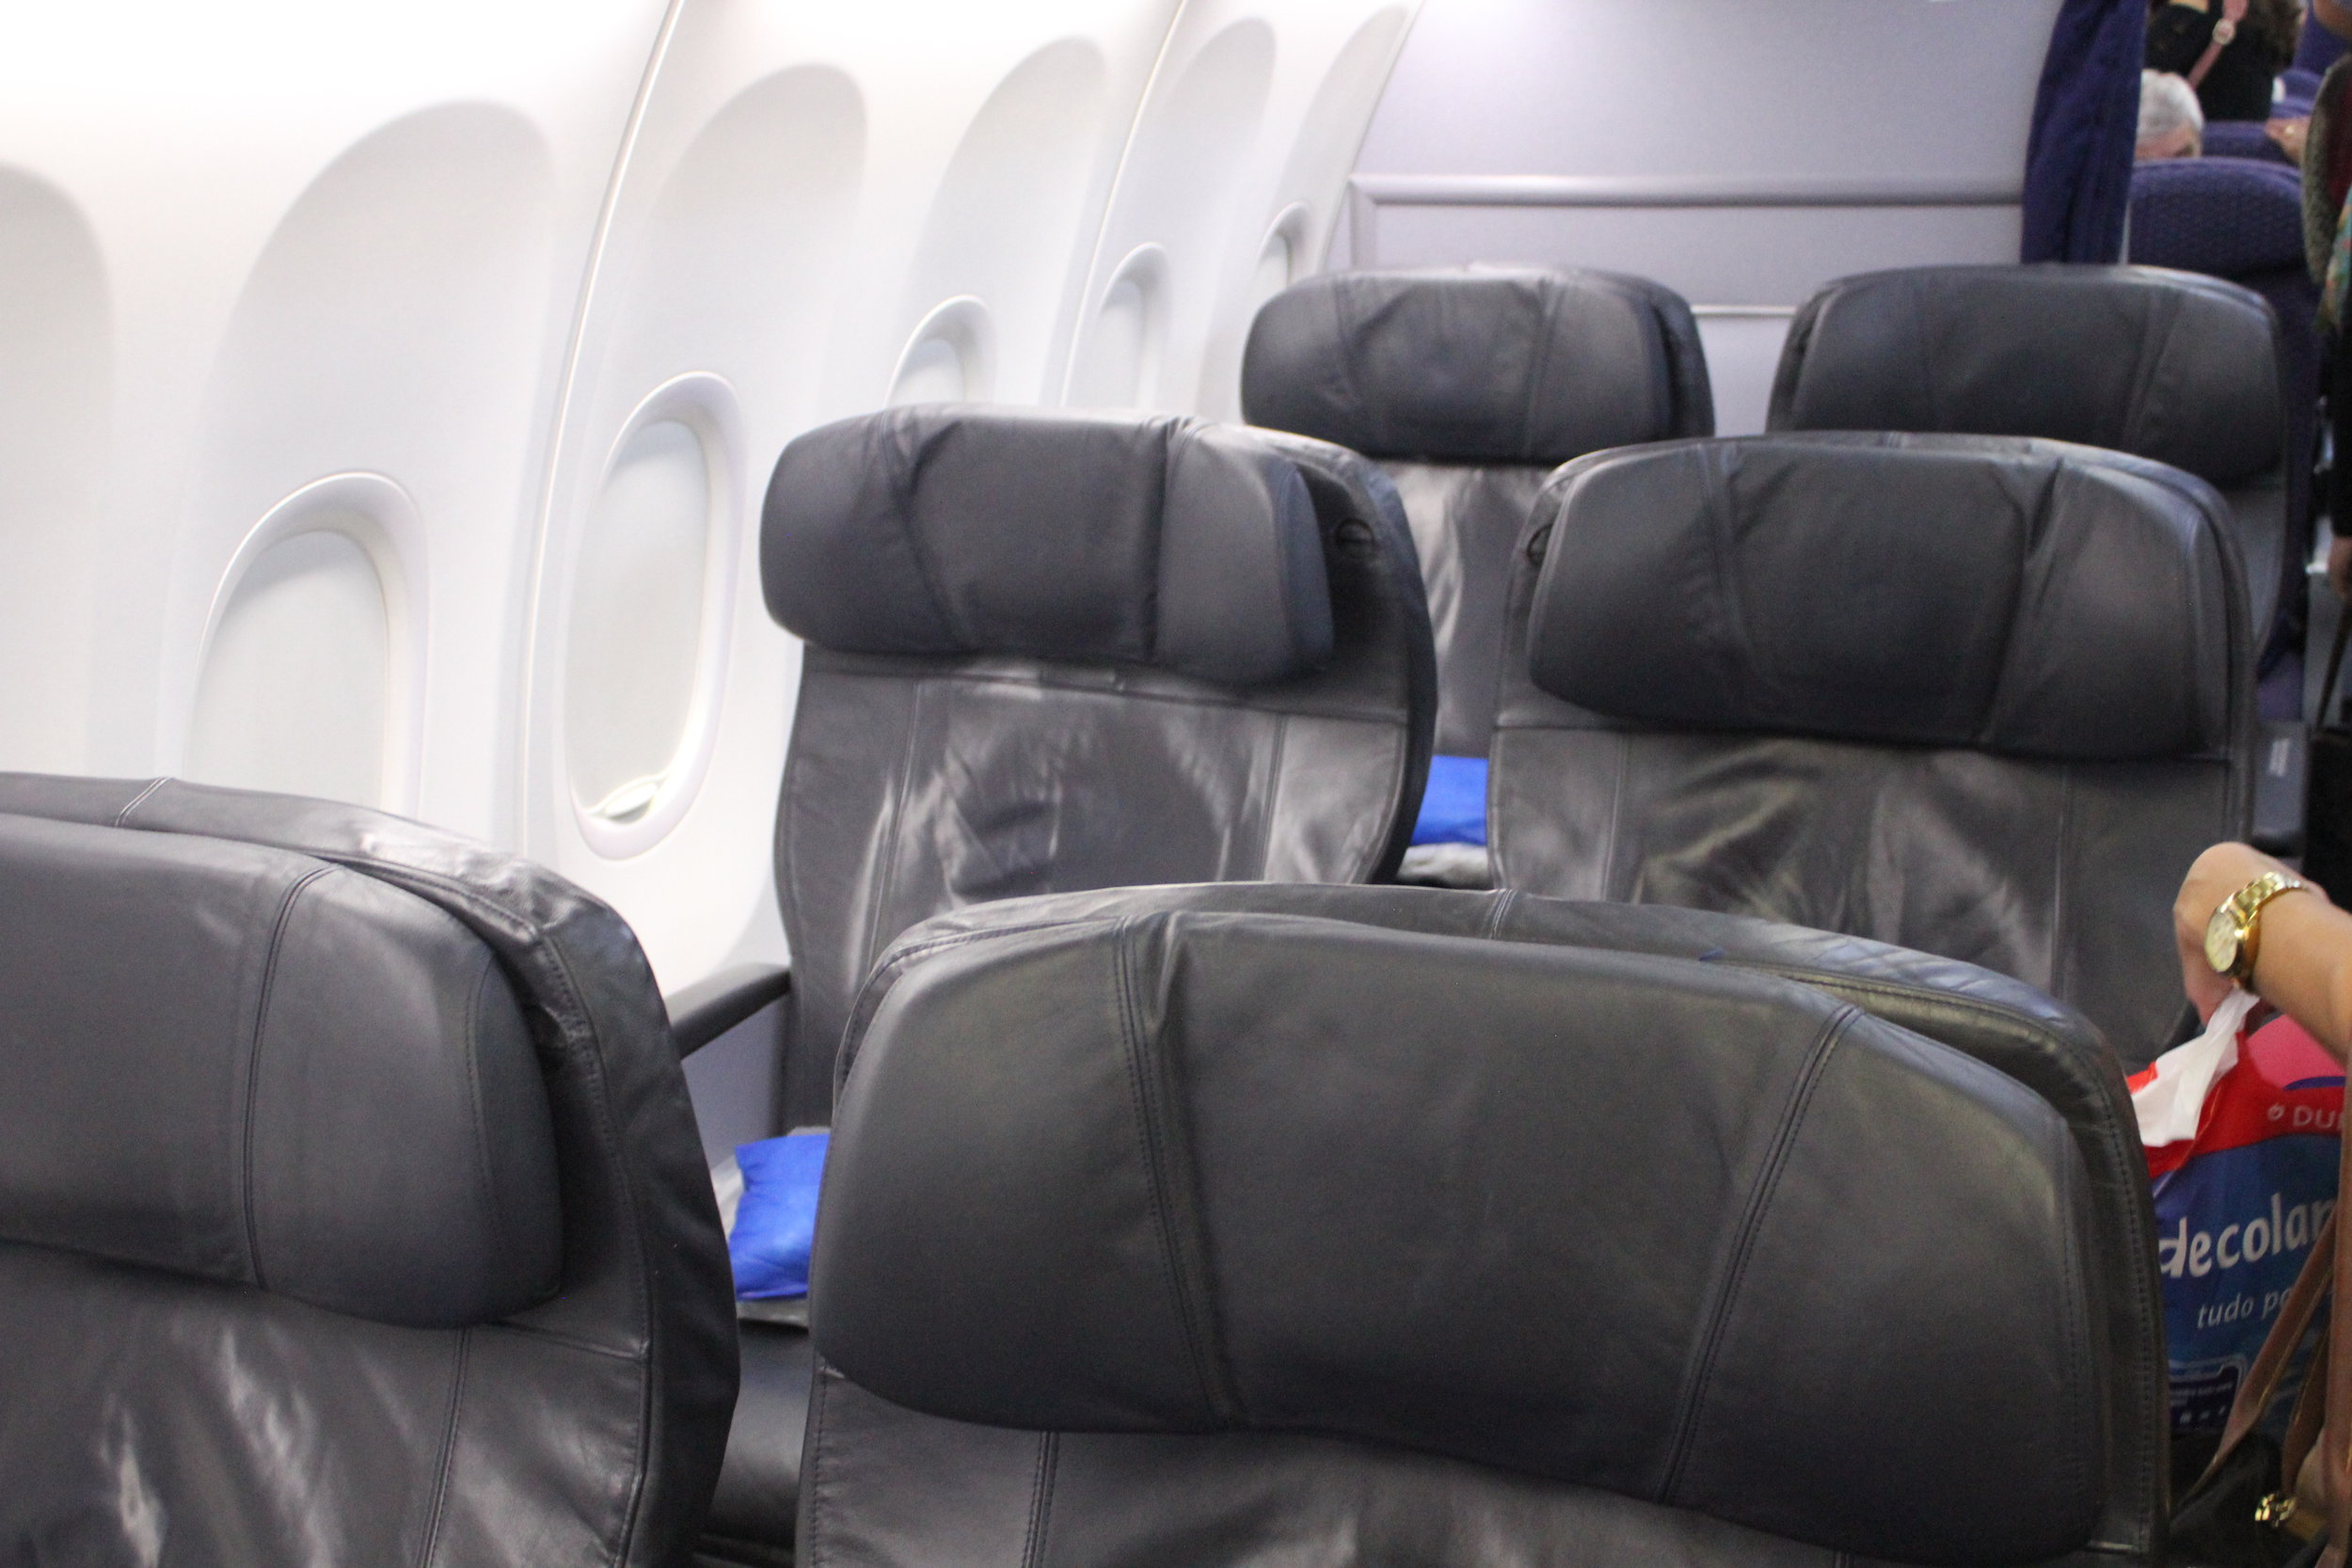 Copa Airlines business class – Cabin